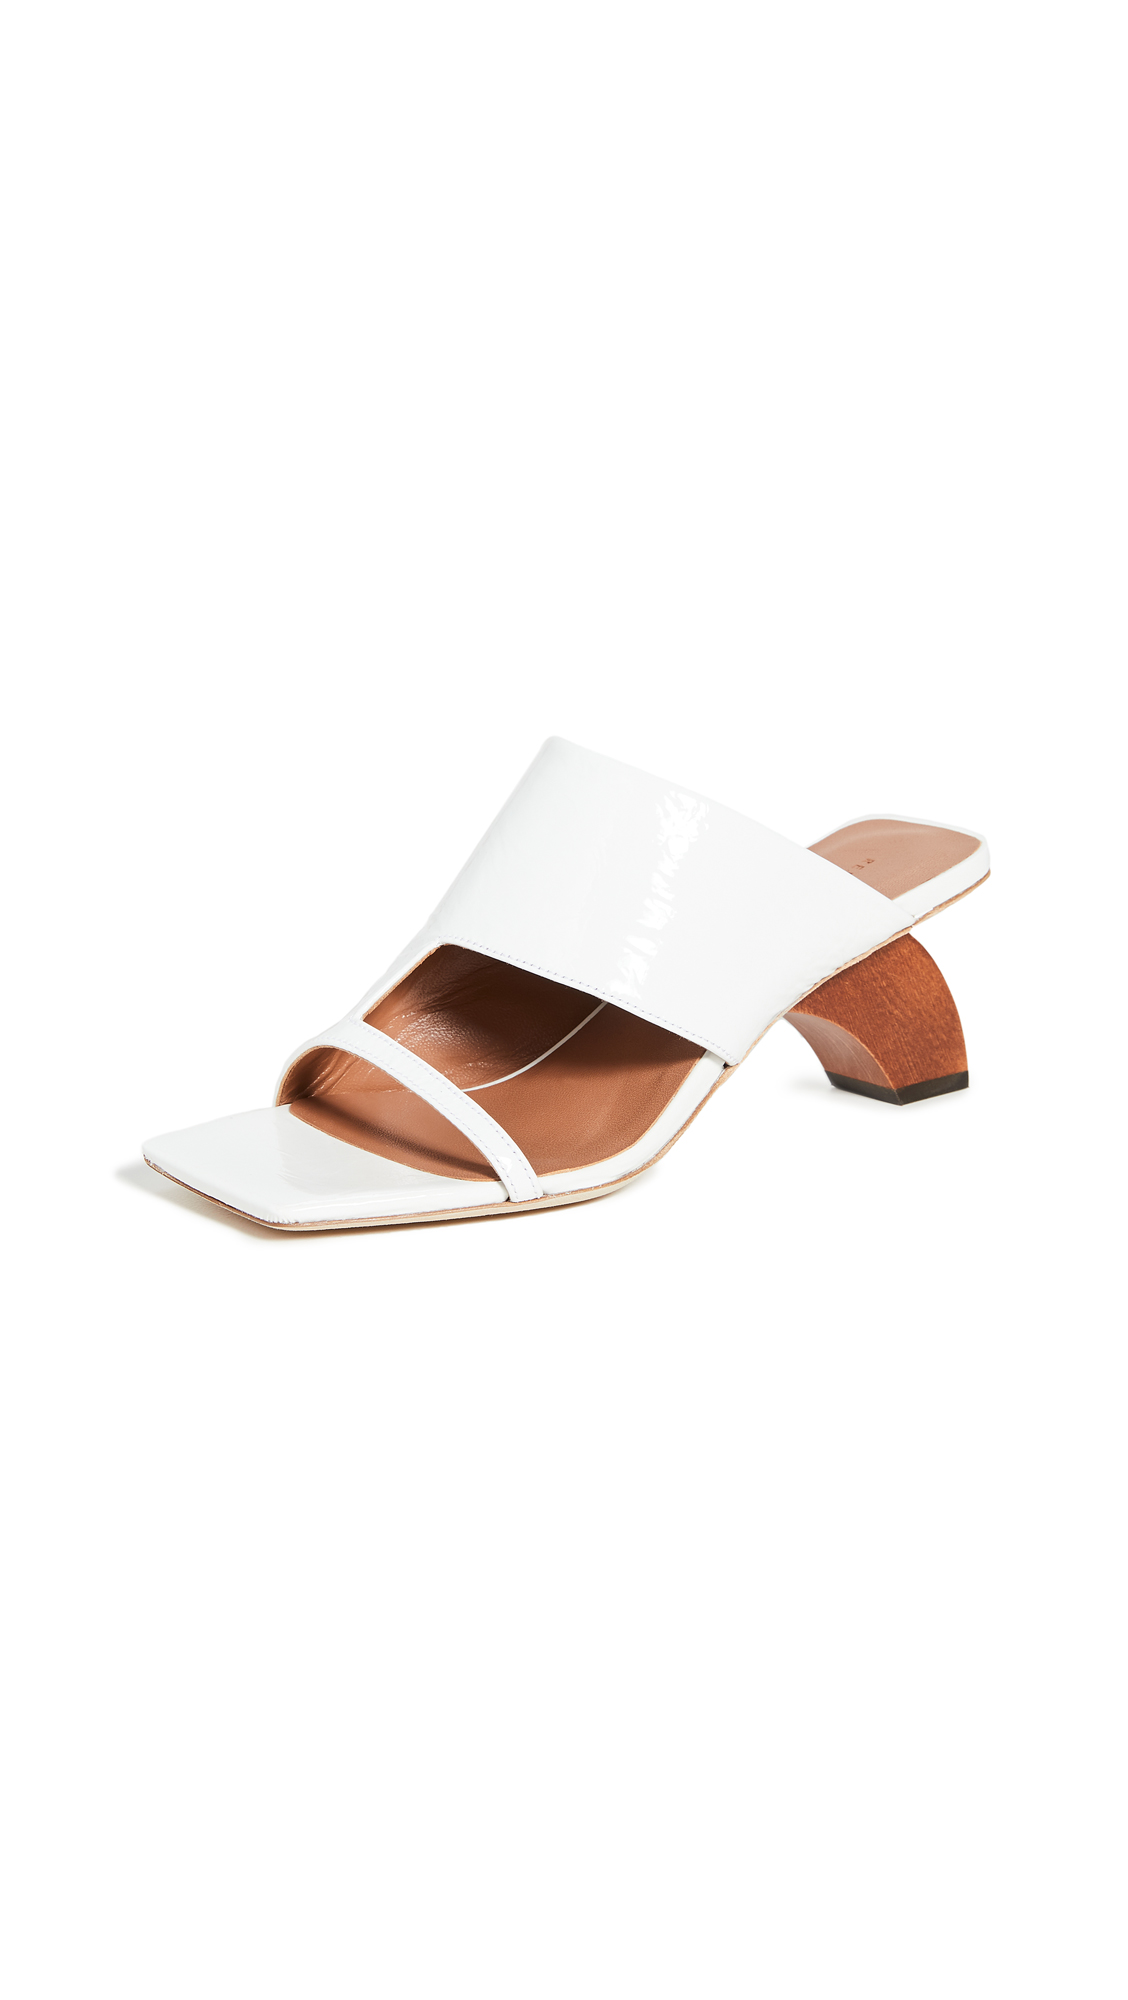 Rejina Pyo 60mm Leah Sandals - 40% Off Sale